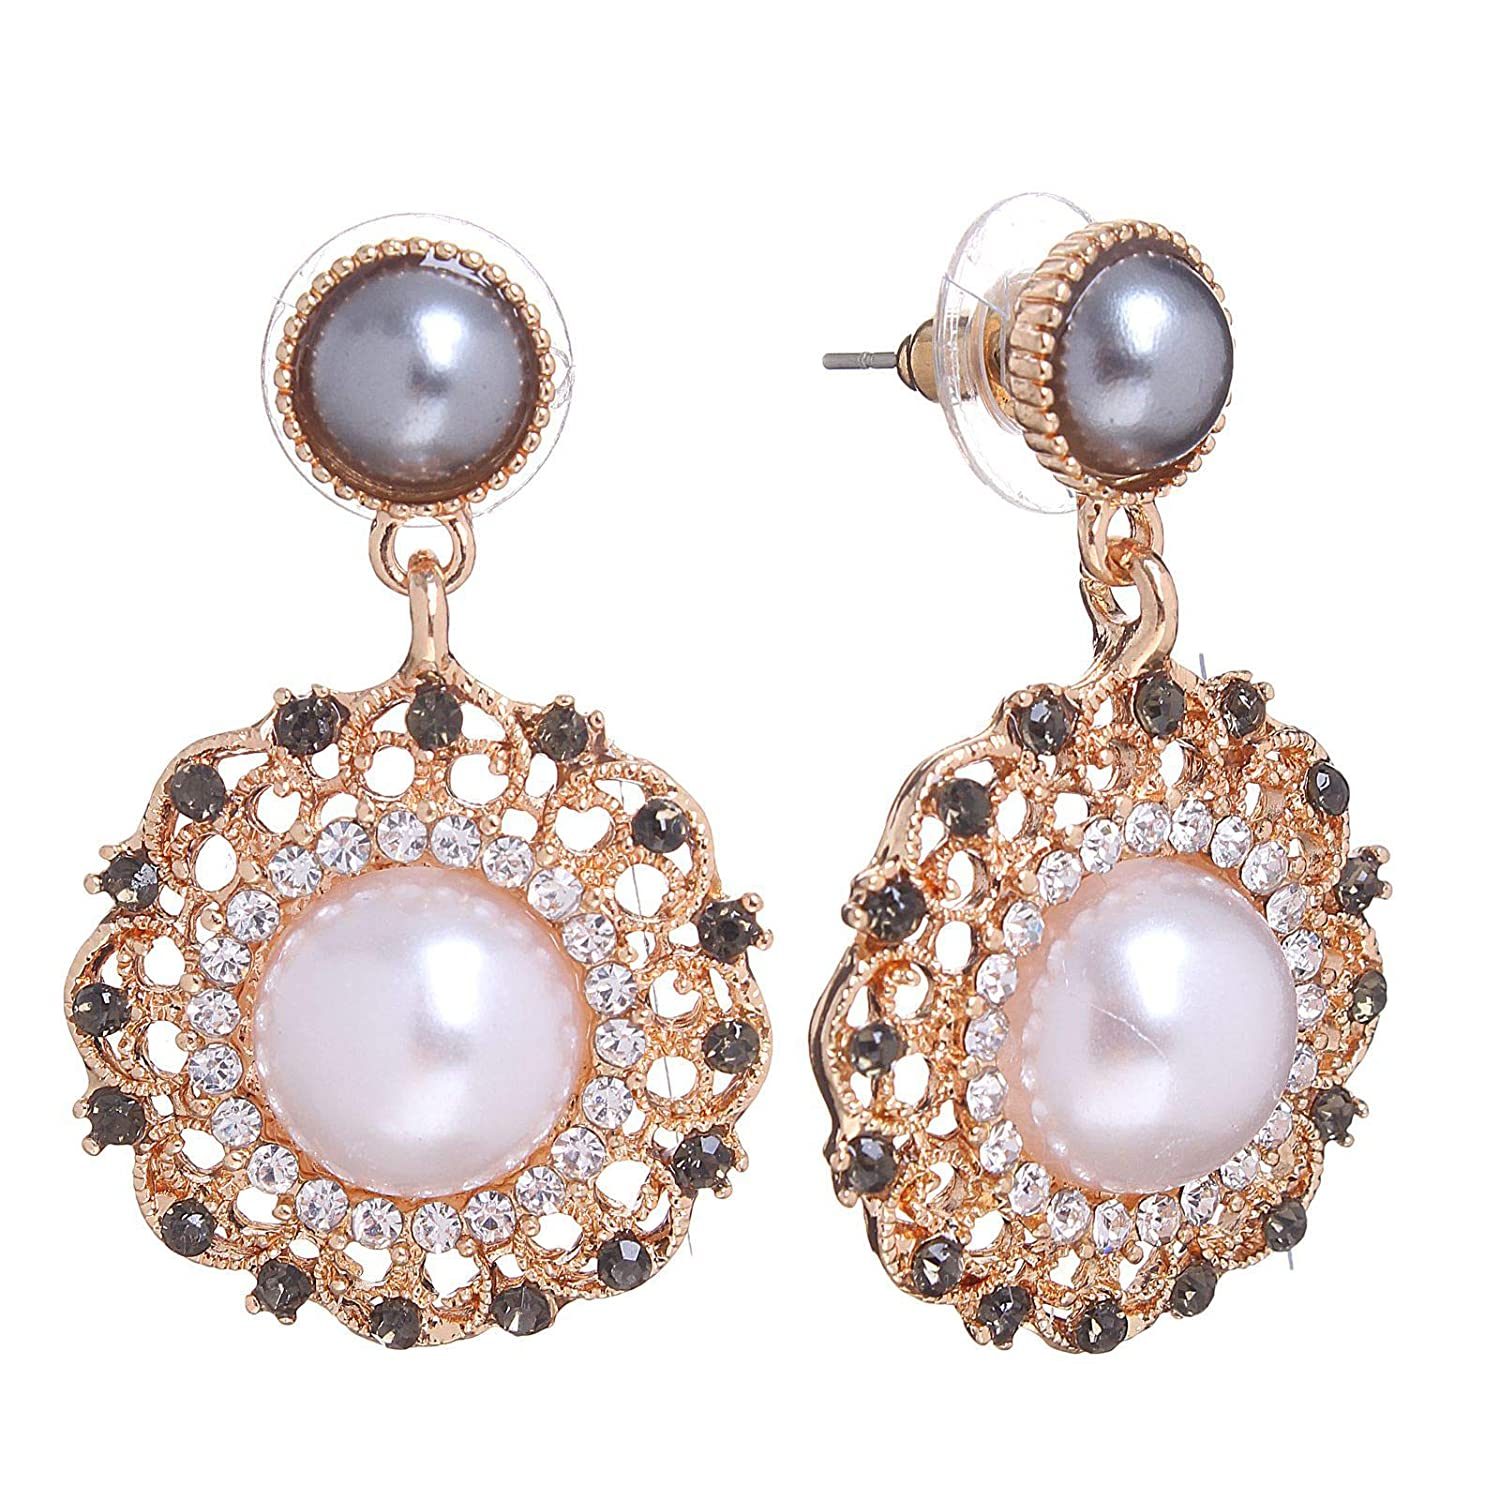 Sparkle Drop Earrings Faux Pearl Studs Round Crystal Charms Pierced Ear Dangles